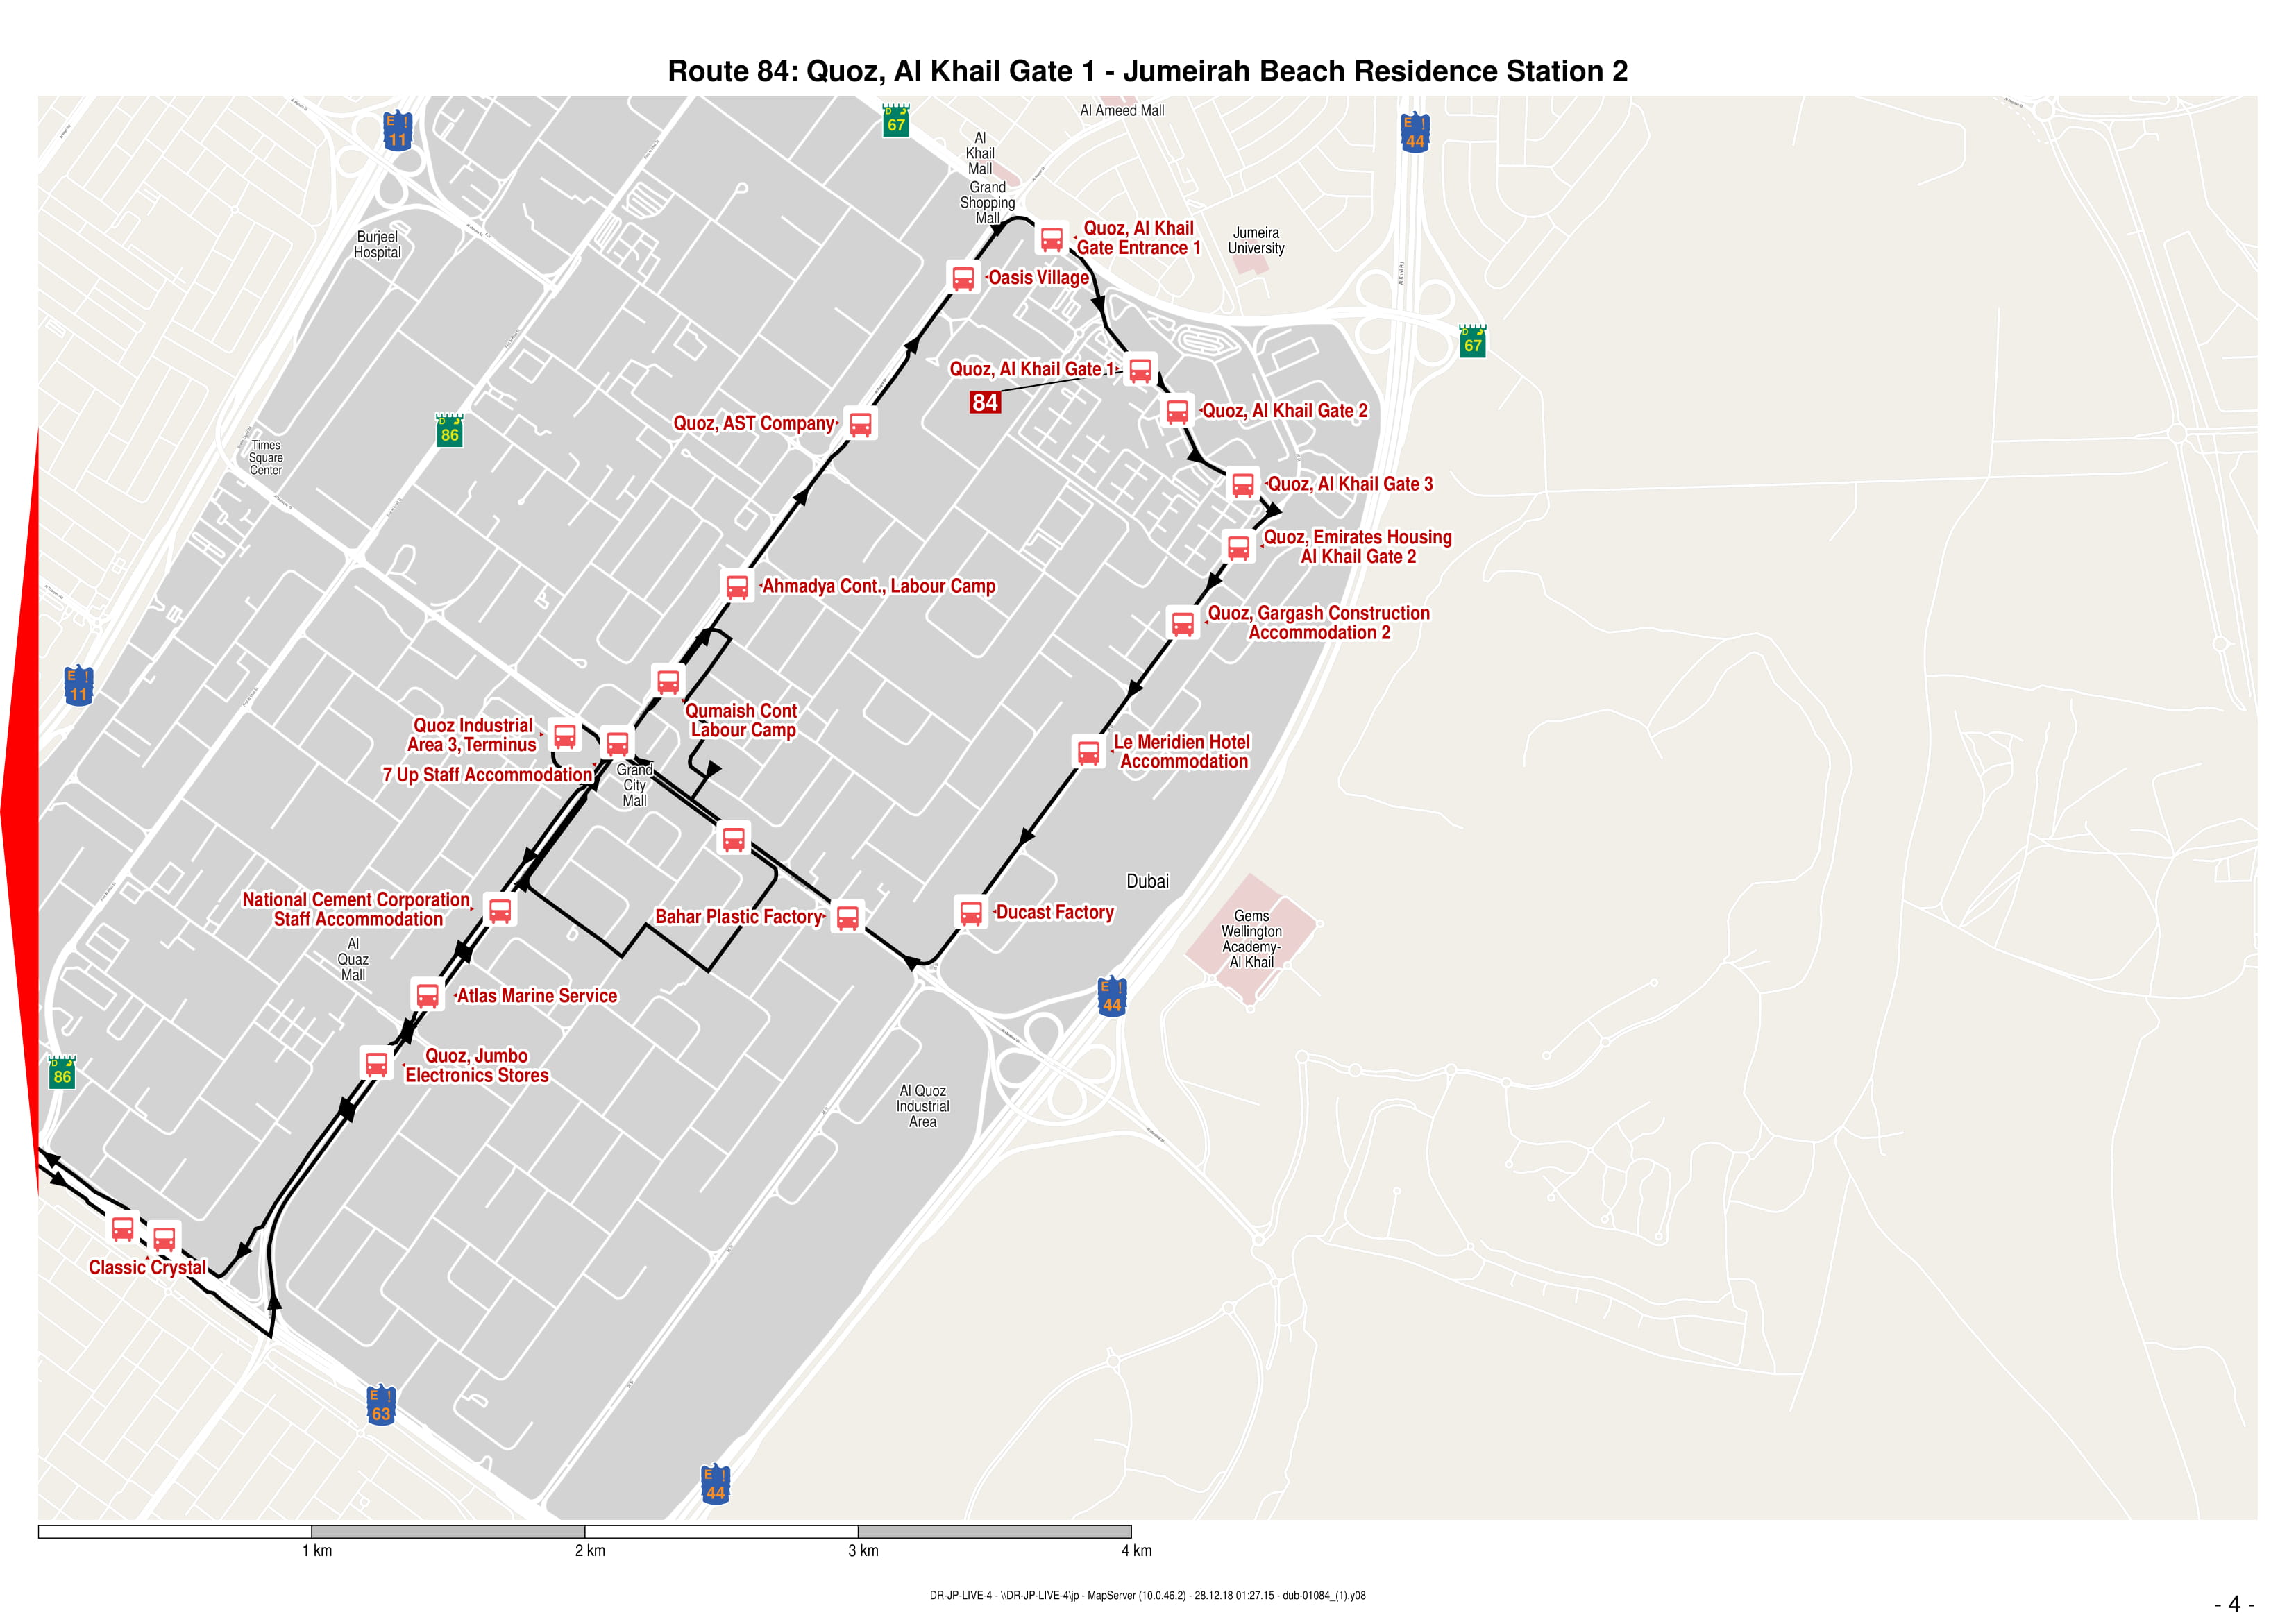 84 Bus Route in Dubai - Time Schedule, Stops and Maps - Your